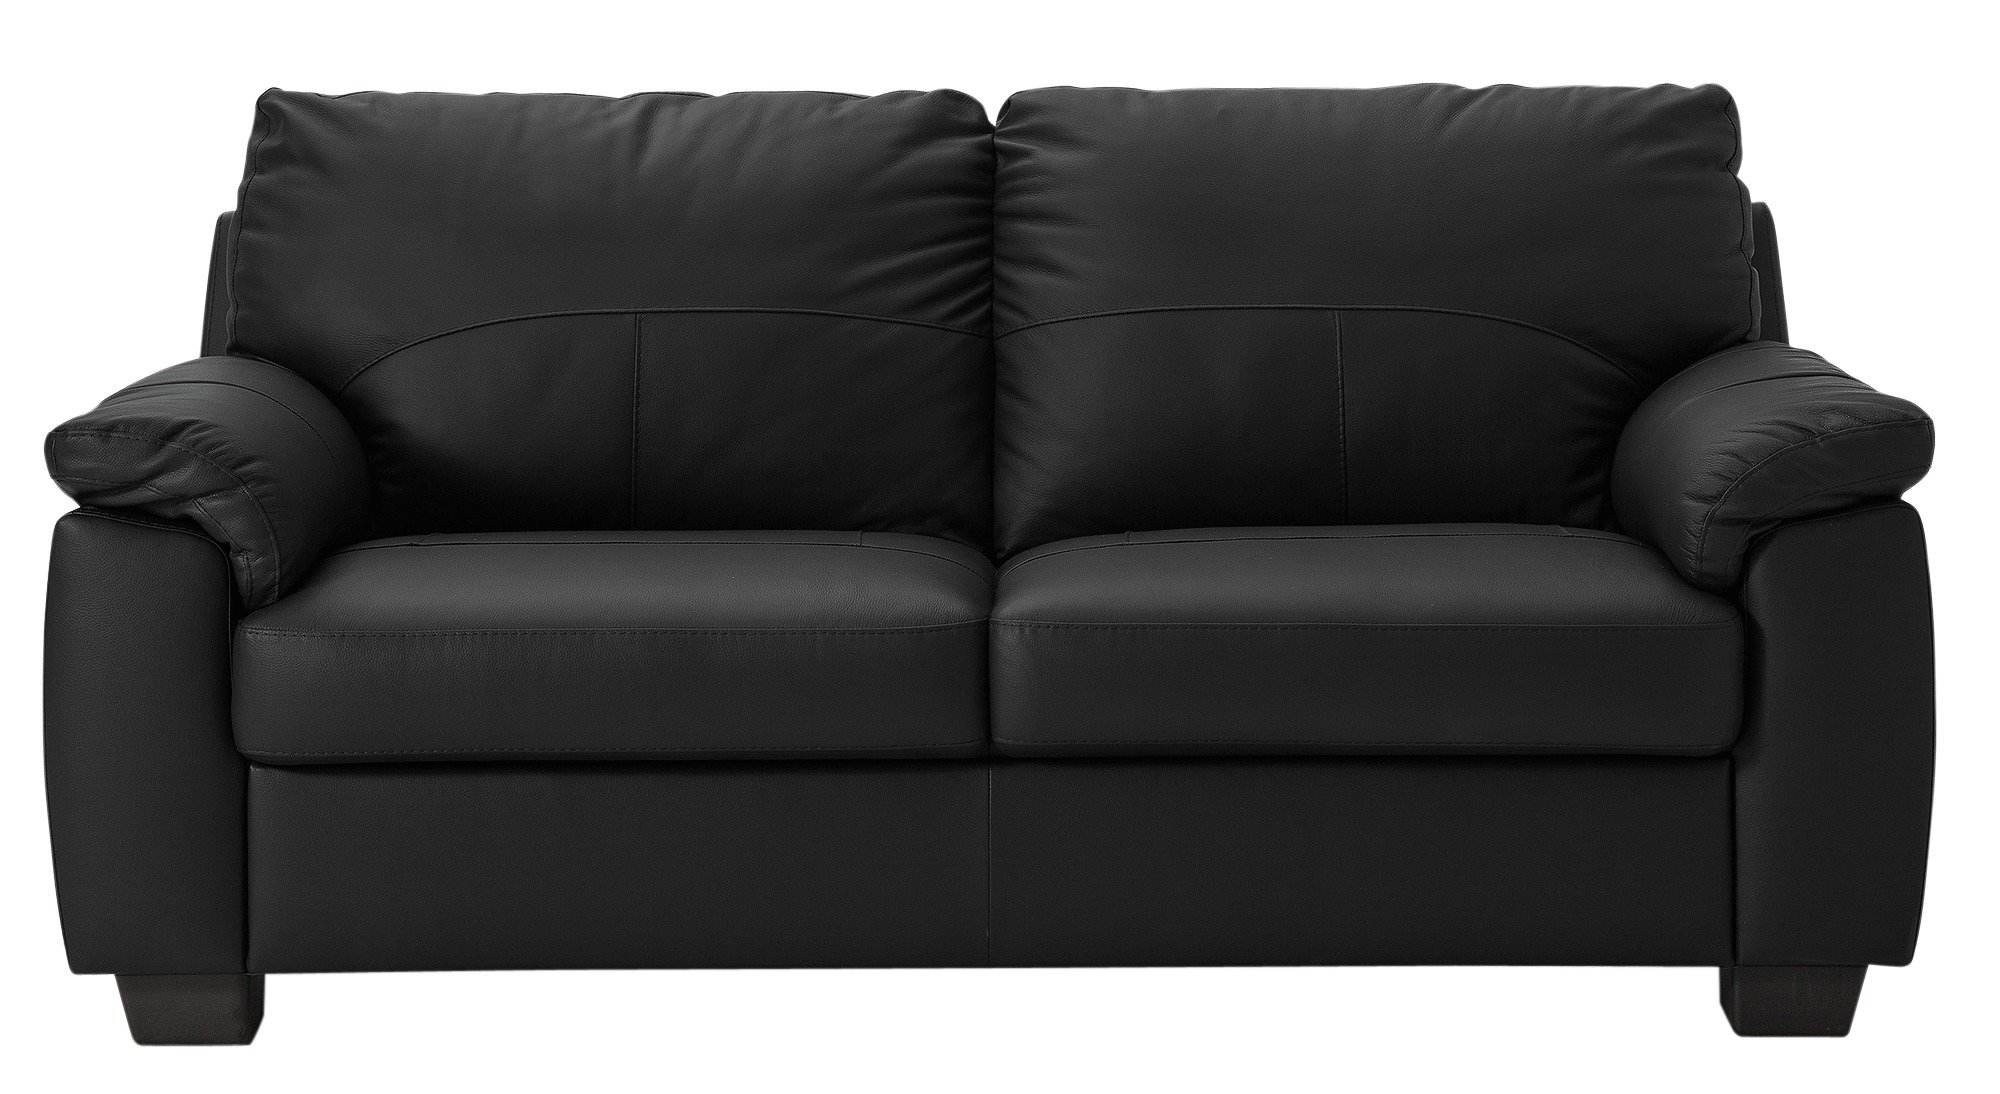 one and half seater sofa power reclining reviews 2017 buy argos home logan 3 faux leather black sofas